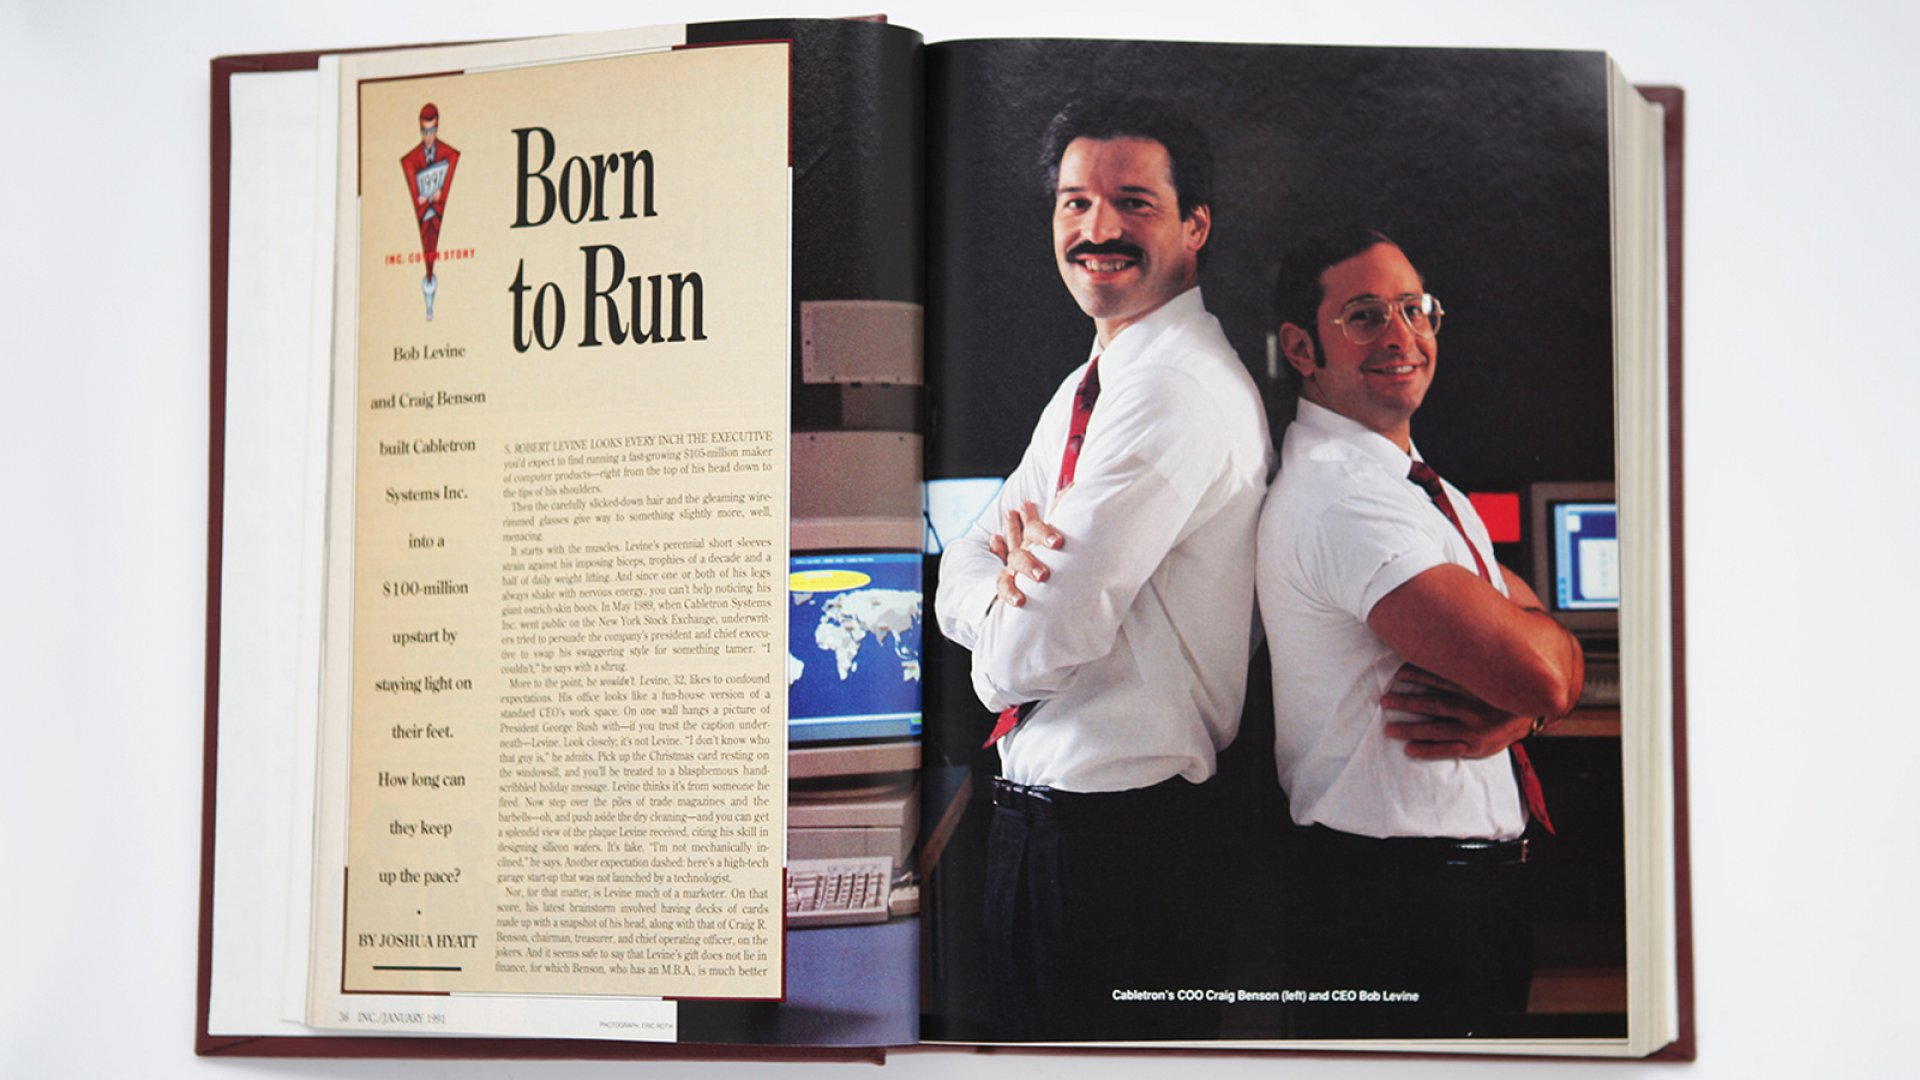 The co-founders, Craig Benson (left) and Bob Levine, launched their computer networking company Cabletron Systems in 1983. While the pair won Inc.'s top honor in 1990, Cabletron would eventually meet a bad end in a 2007 securities scandal.